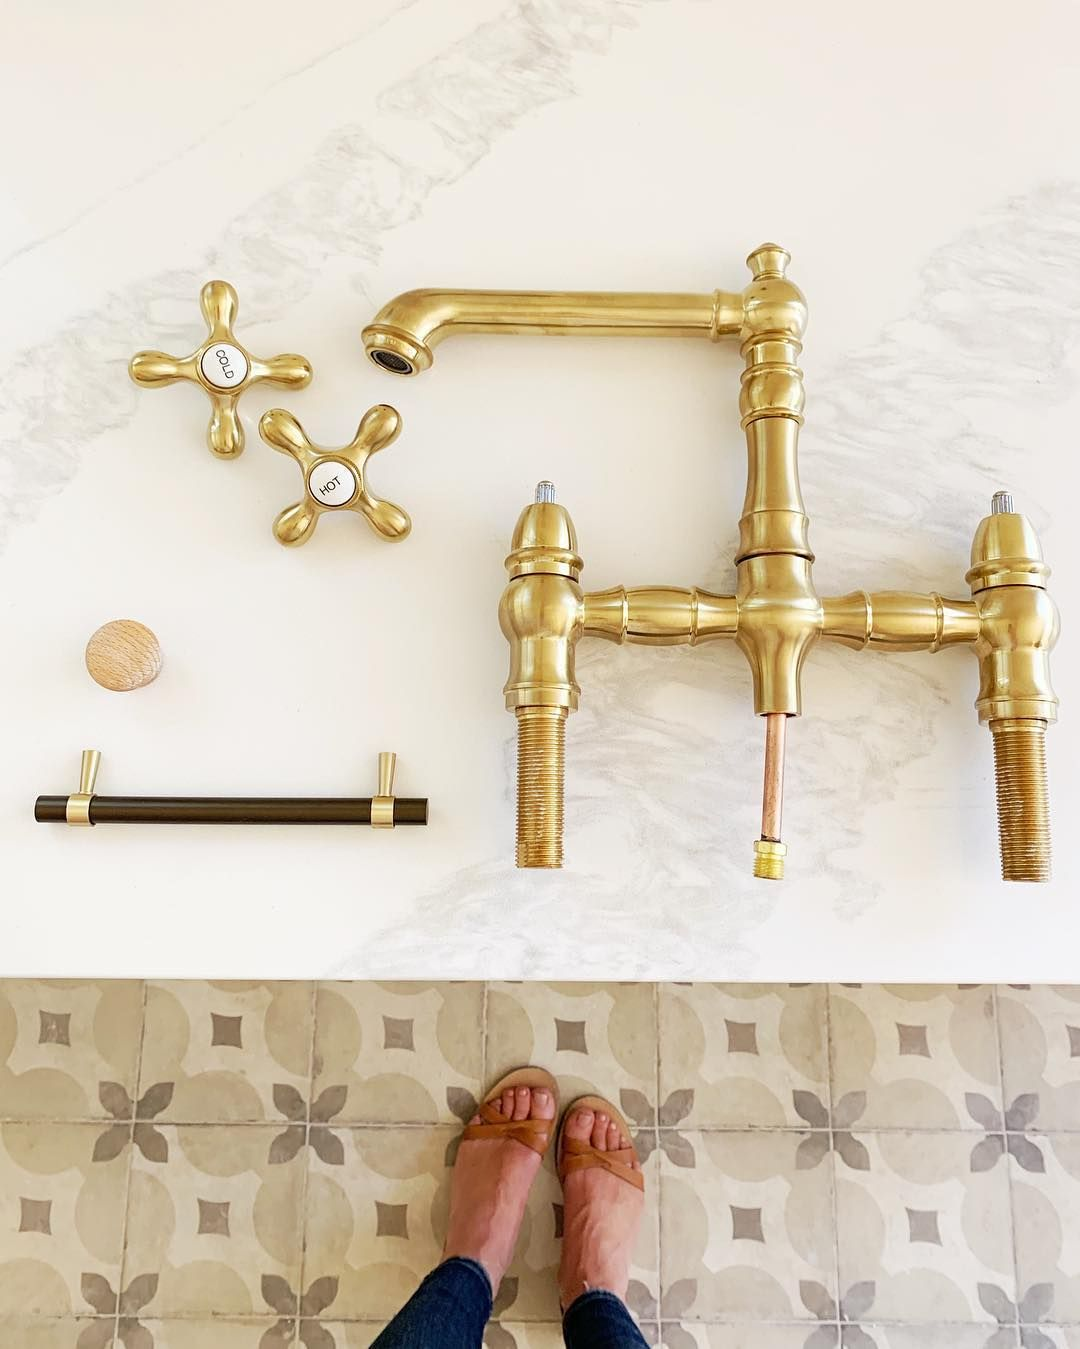 Gold Polished Pull Out Spray Kitchen Sink Mixer Tap Swivel Spout Faucet Kitchen Sink Faucets Kitchen Faucet Farmhouse Kitchen Faucet